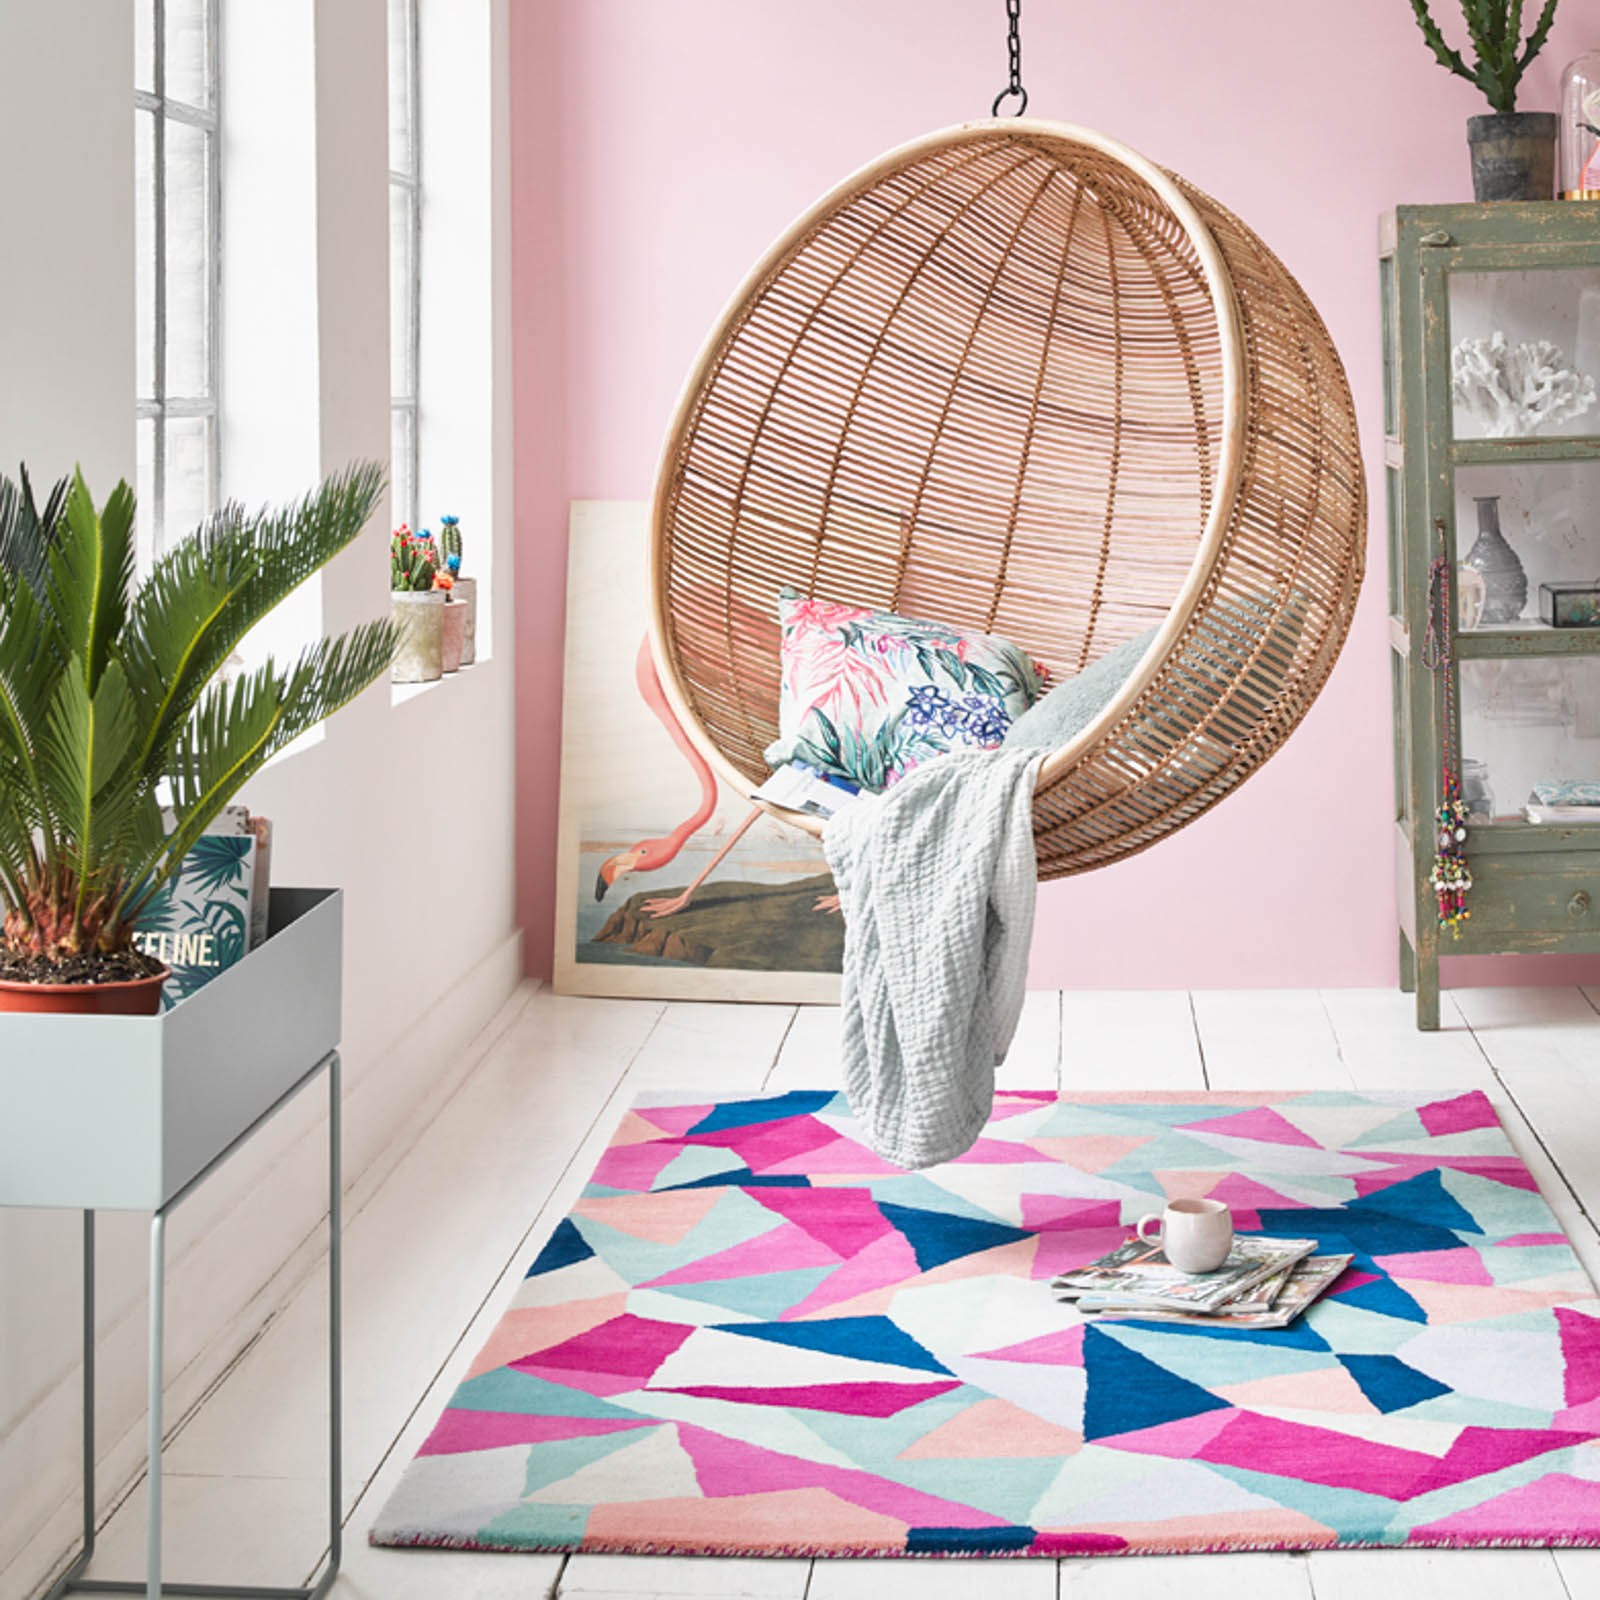 Triangulum rugs 016 10 by Accessorize Home